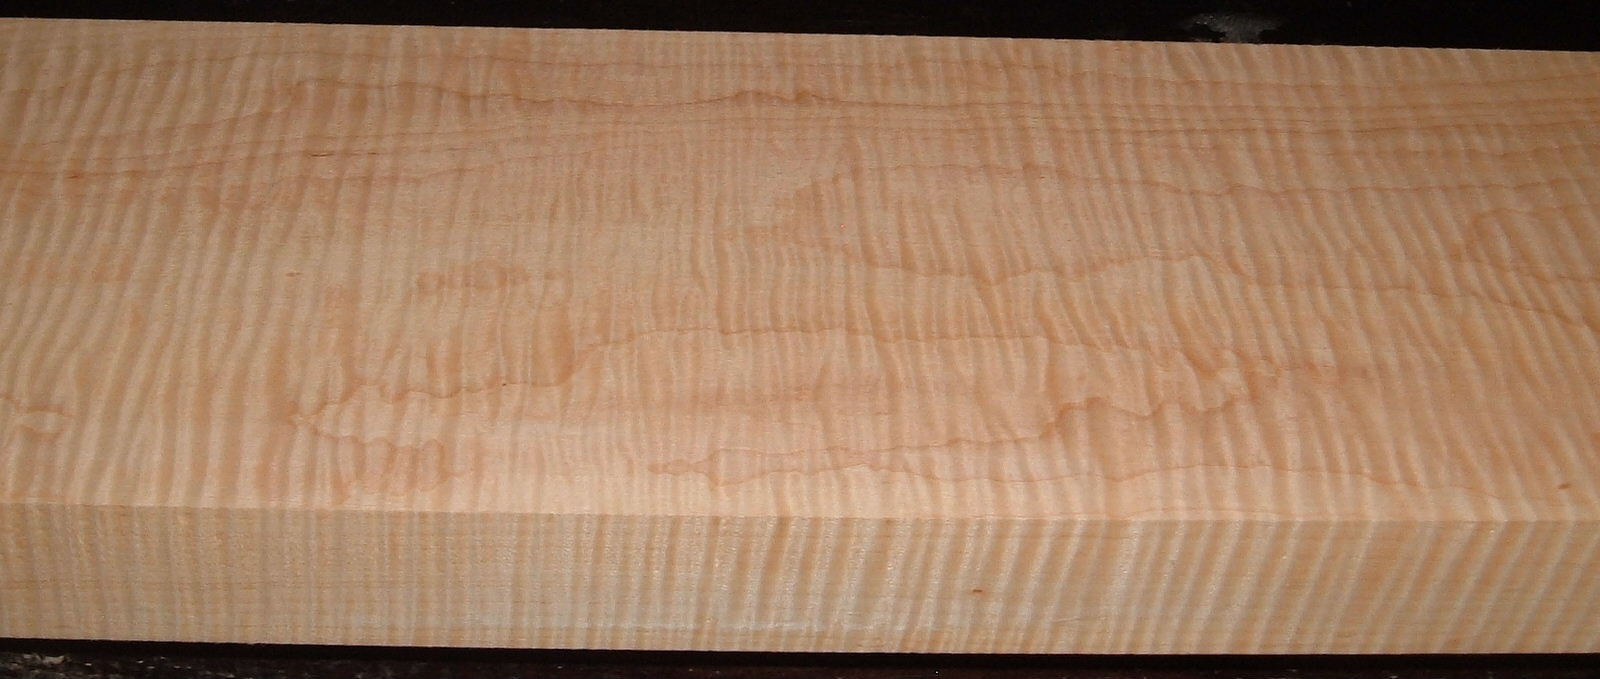 M2007-612, +1-7/8x5-3/4x39, Curly Tiger Maple